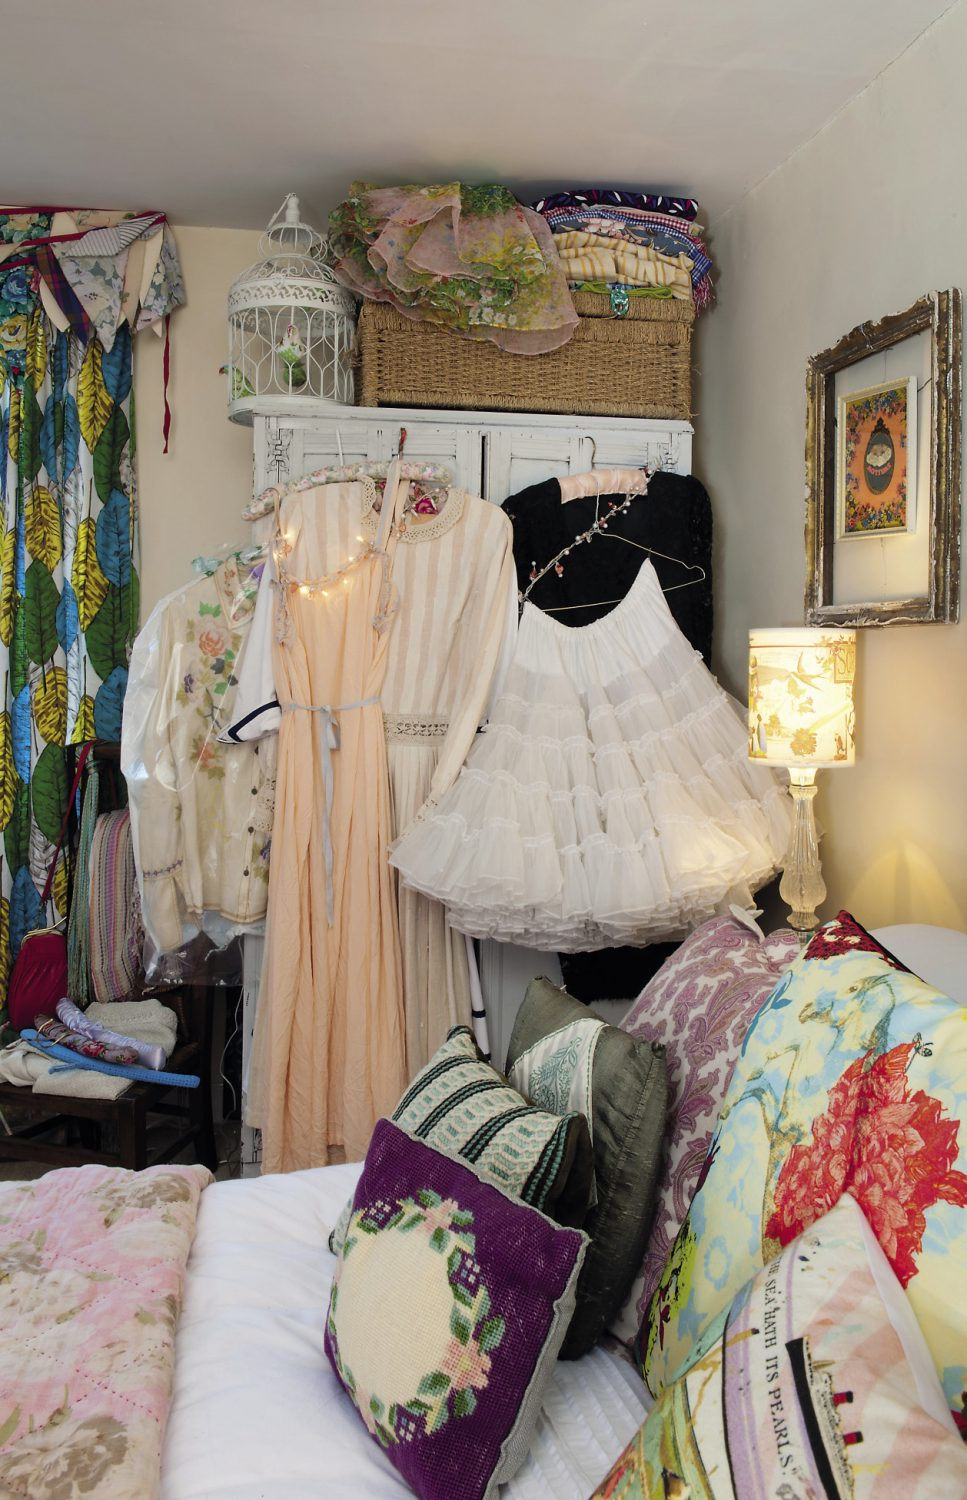 the guest room, but with so many vintage clothes and accessories on display is really more of a 'boudoir'